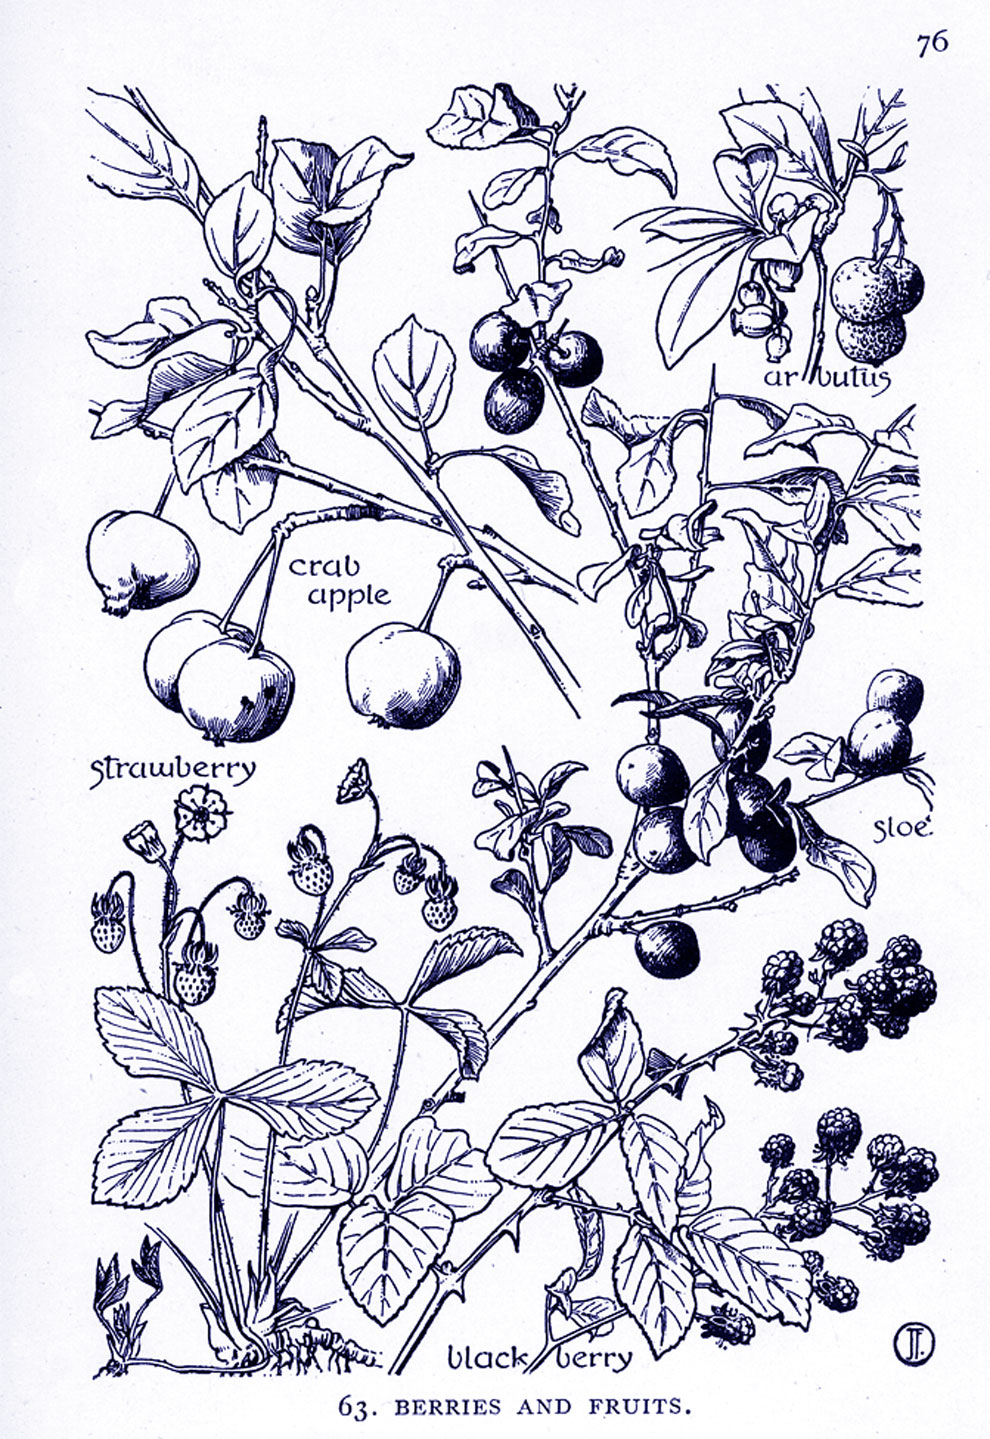 berries & fruits illustration